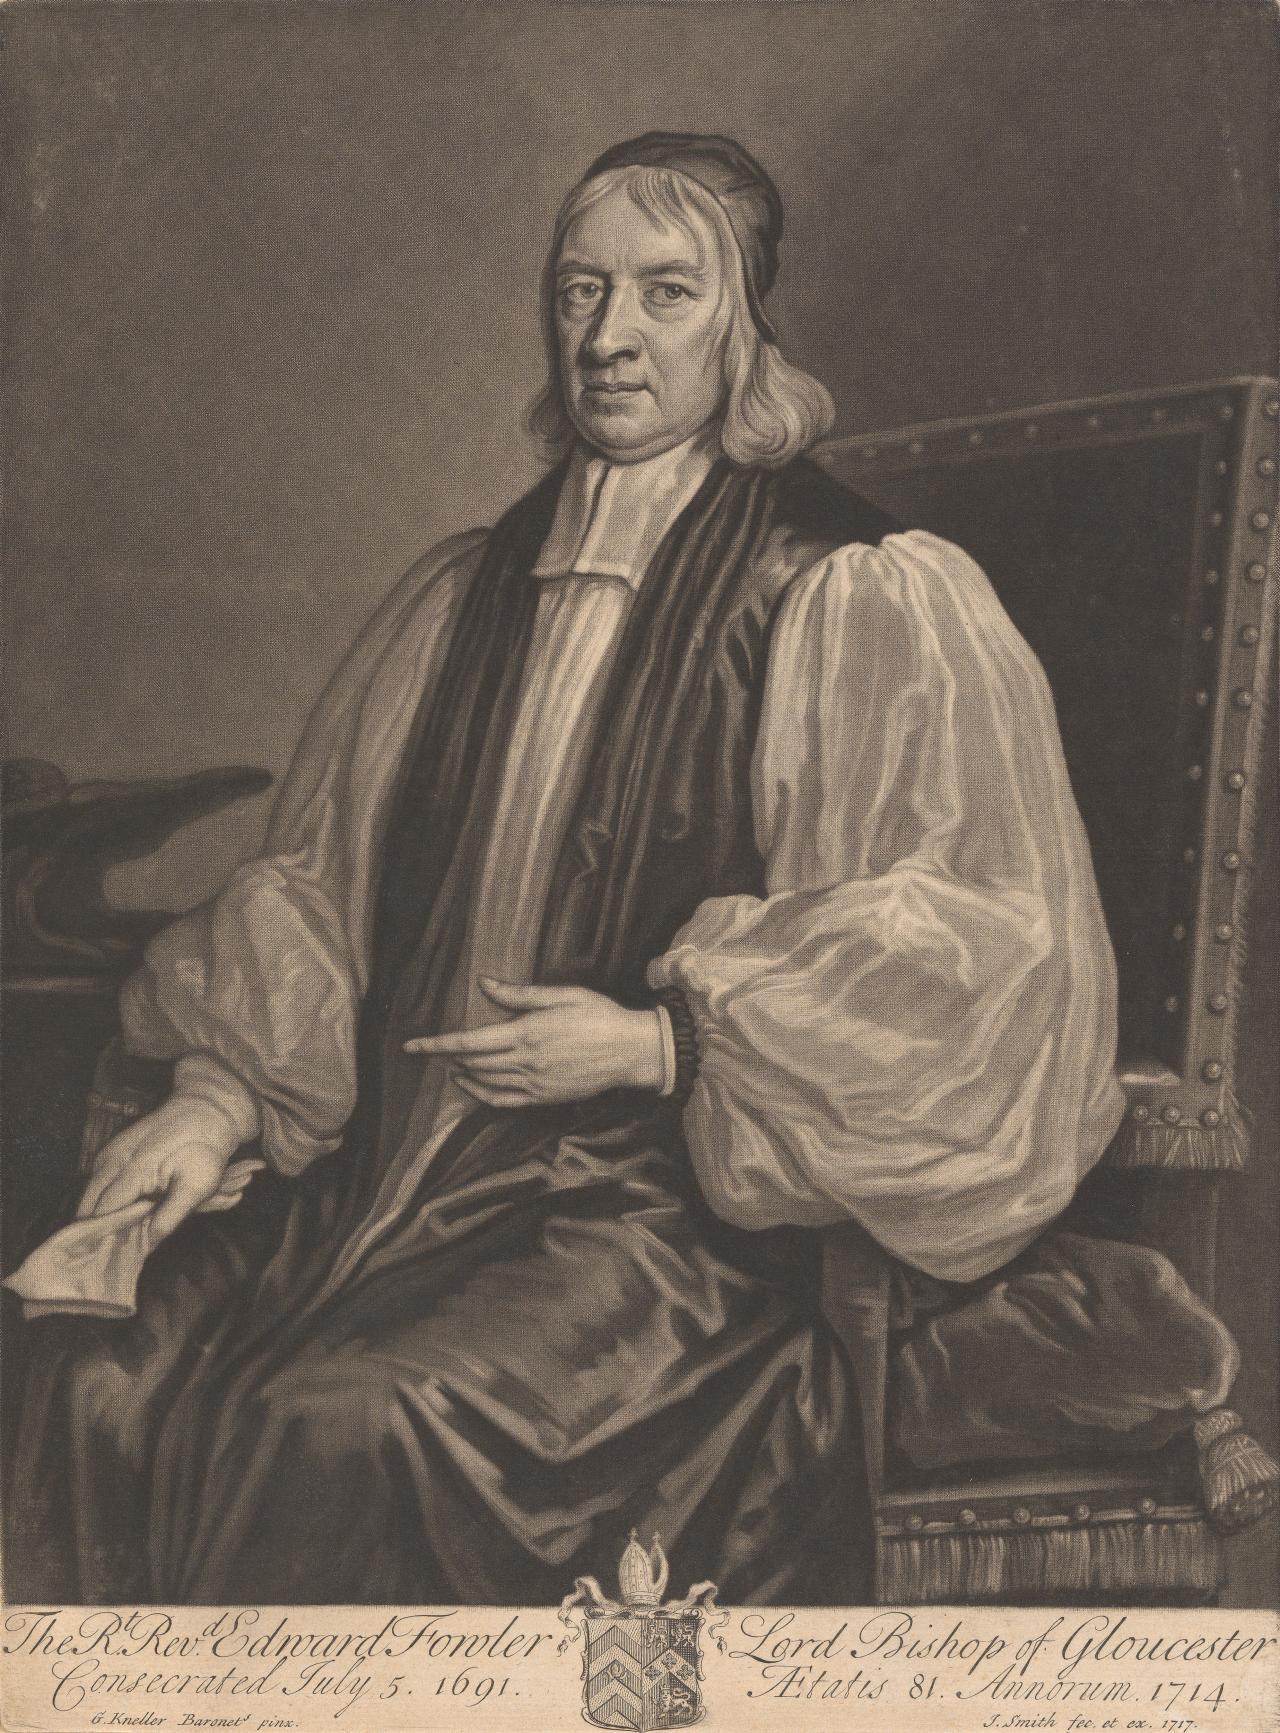 The Right Reverend Edward Fowler